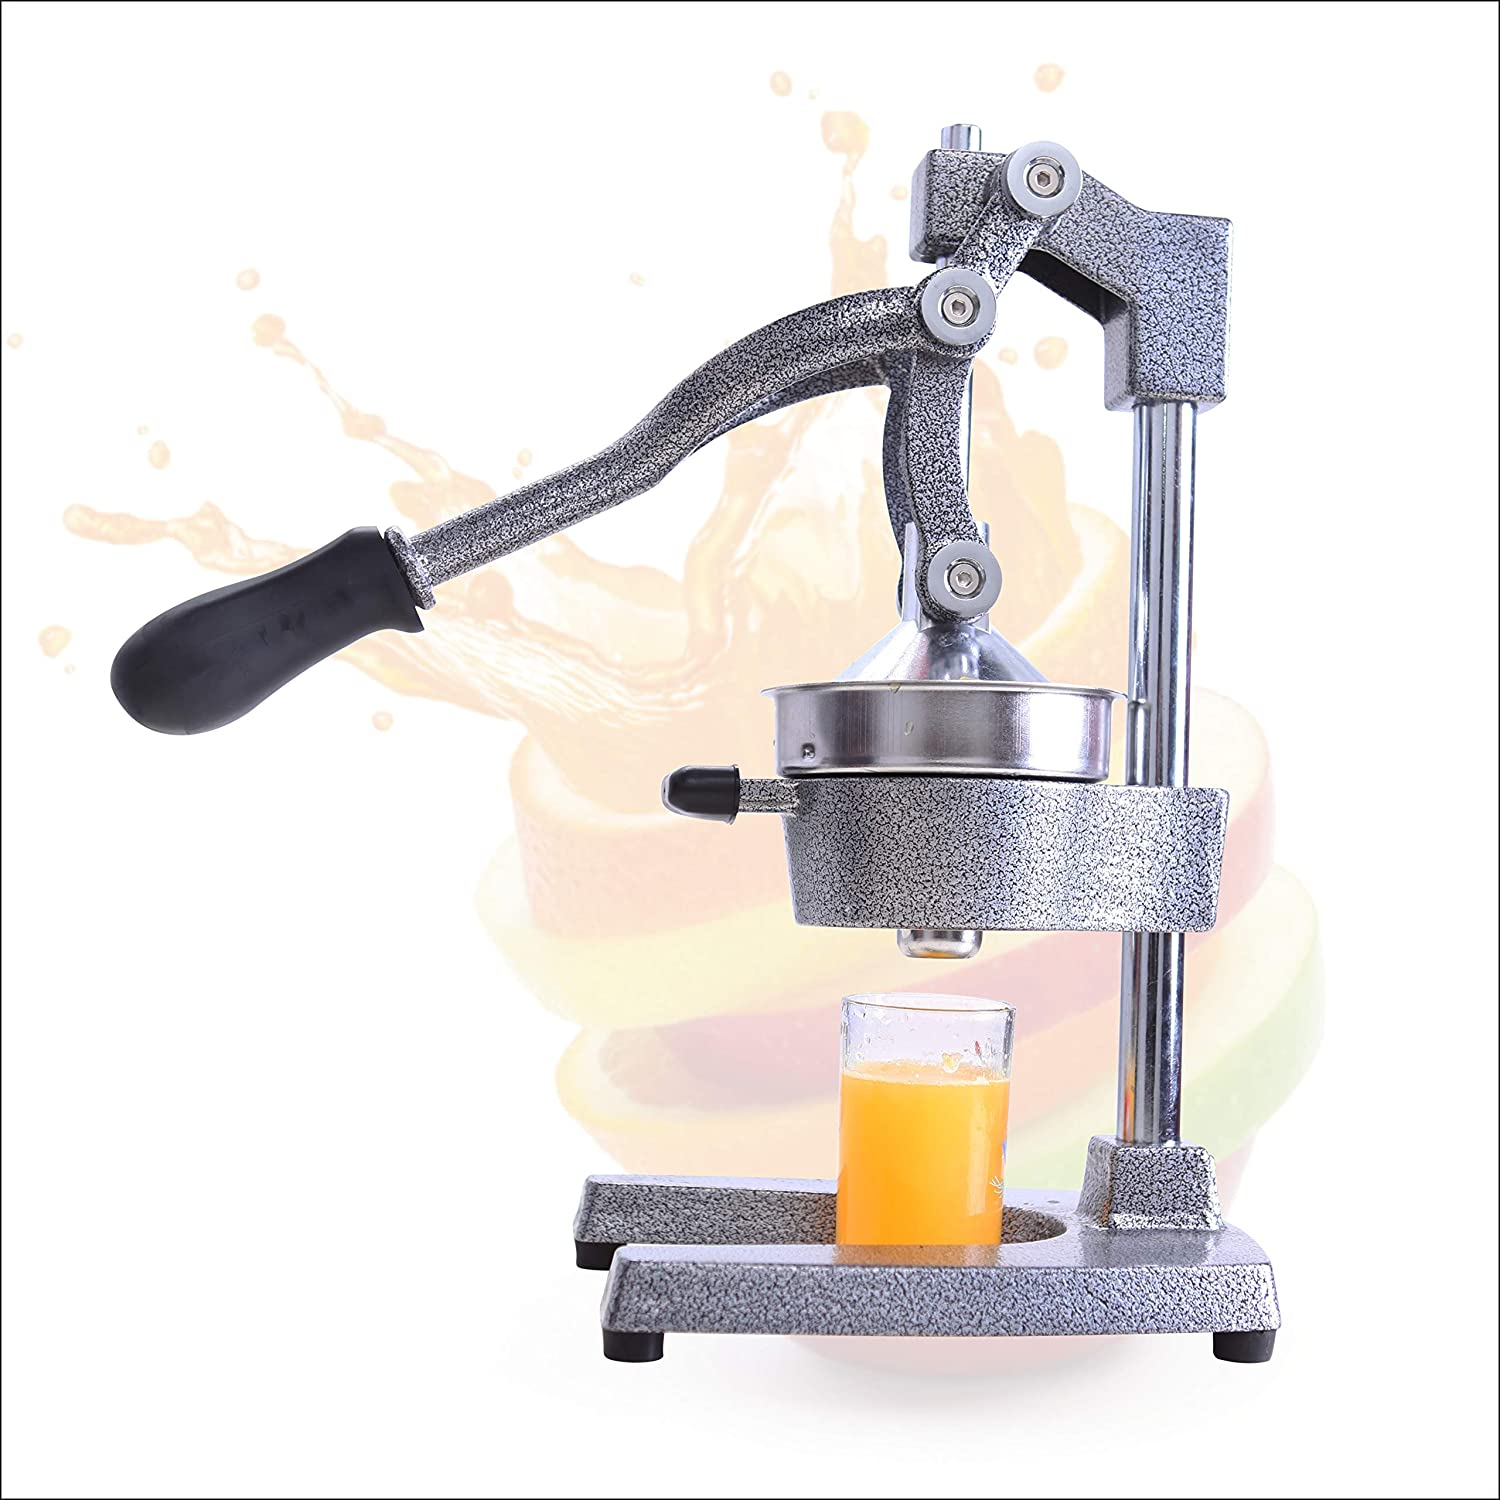 ARC USA, Juicer Press Squeezer, Manual Hand Press, Professional Fruit Juicer, Heavy Duty, Orange Juicer, Citrus Juicer, Lime Squeezer Press Stand, Commercial Grade Hand Press Extractor